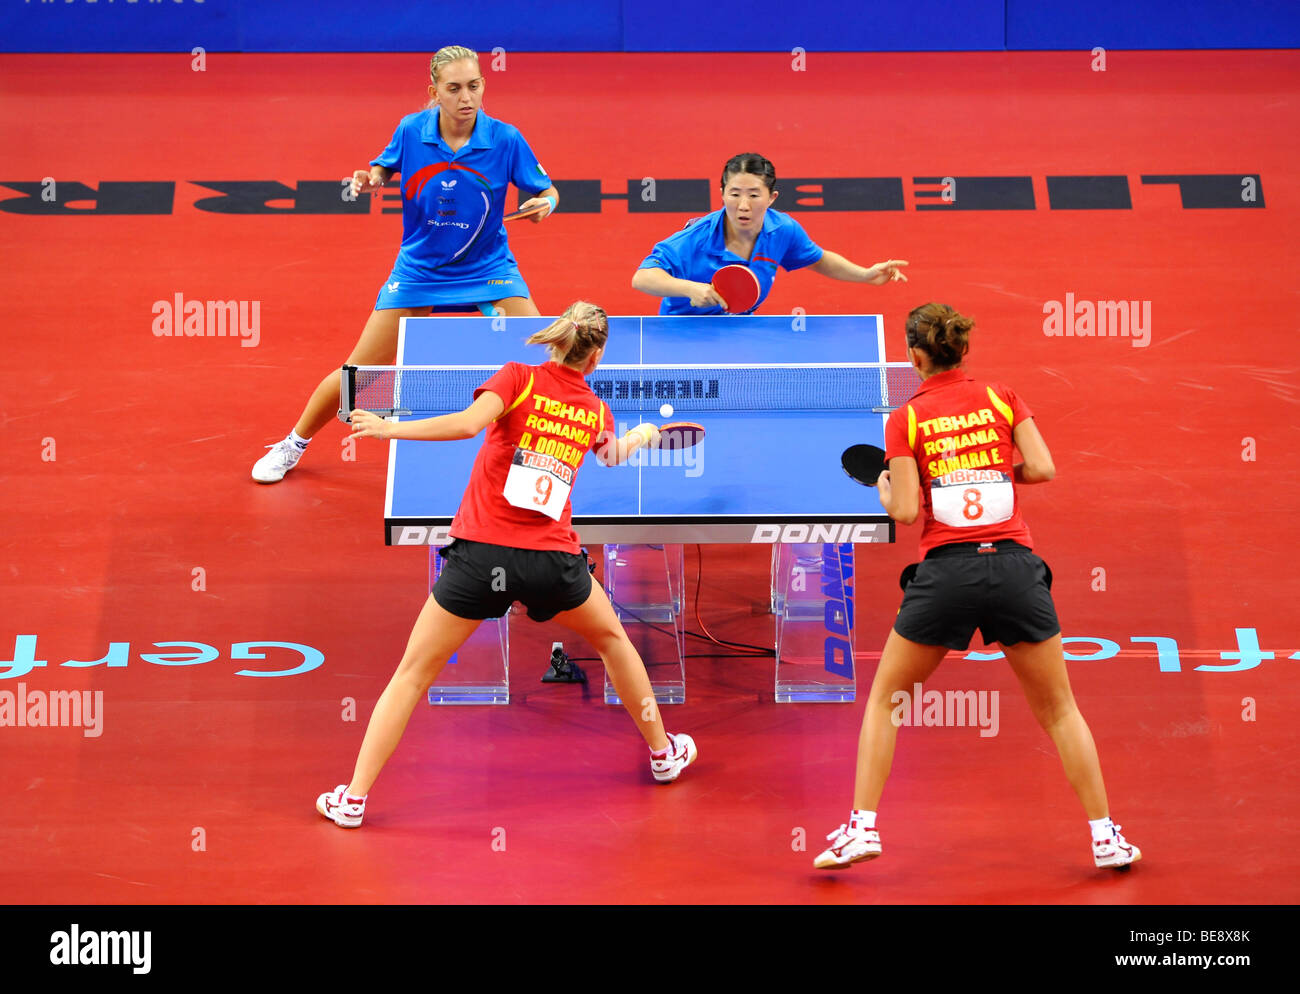 Elizabeta Samara et Daniela Dodean, Roumanie, vs Nikoleta STEFANOVA et Wenling TAN, Italie, tennis de table EM 2009, Photo Stock